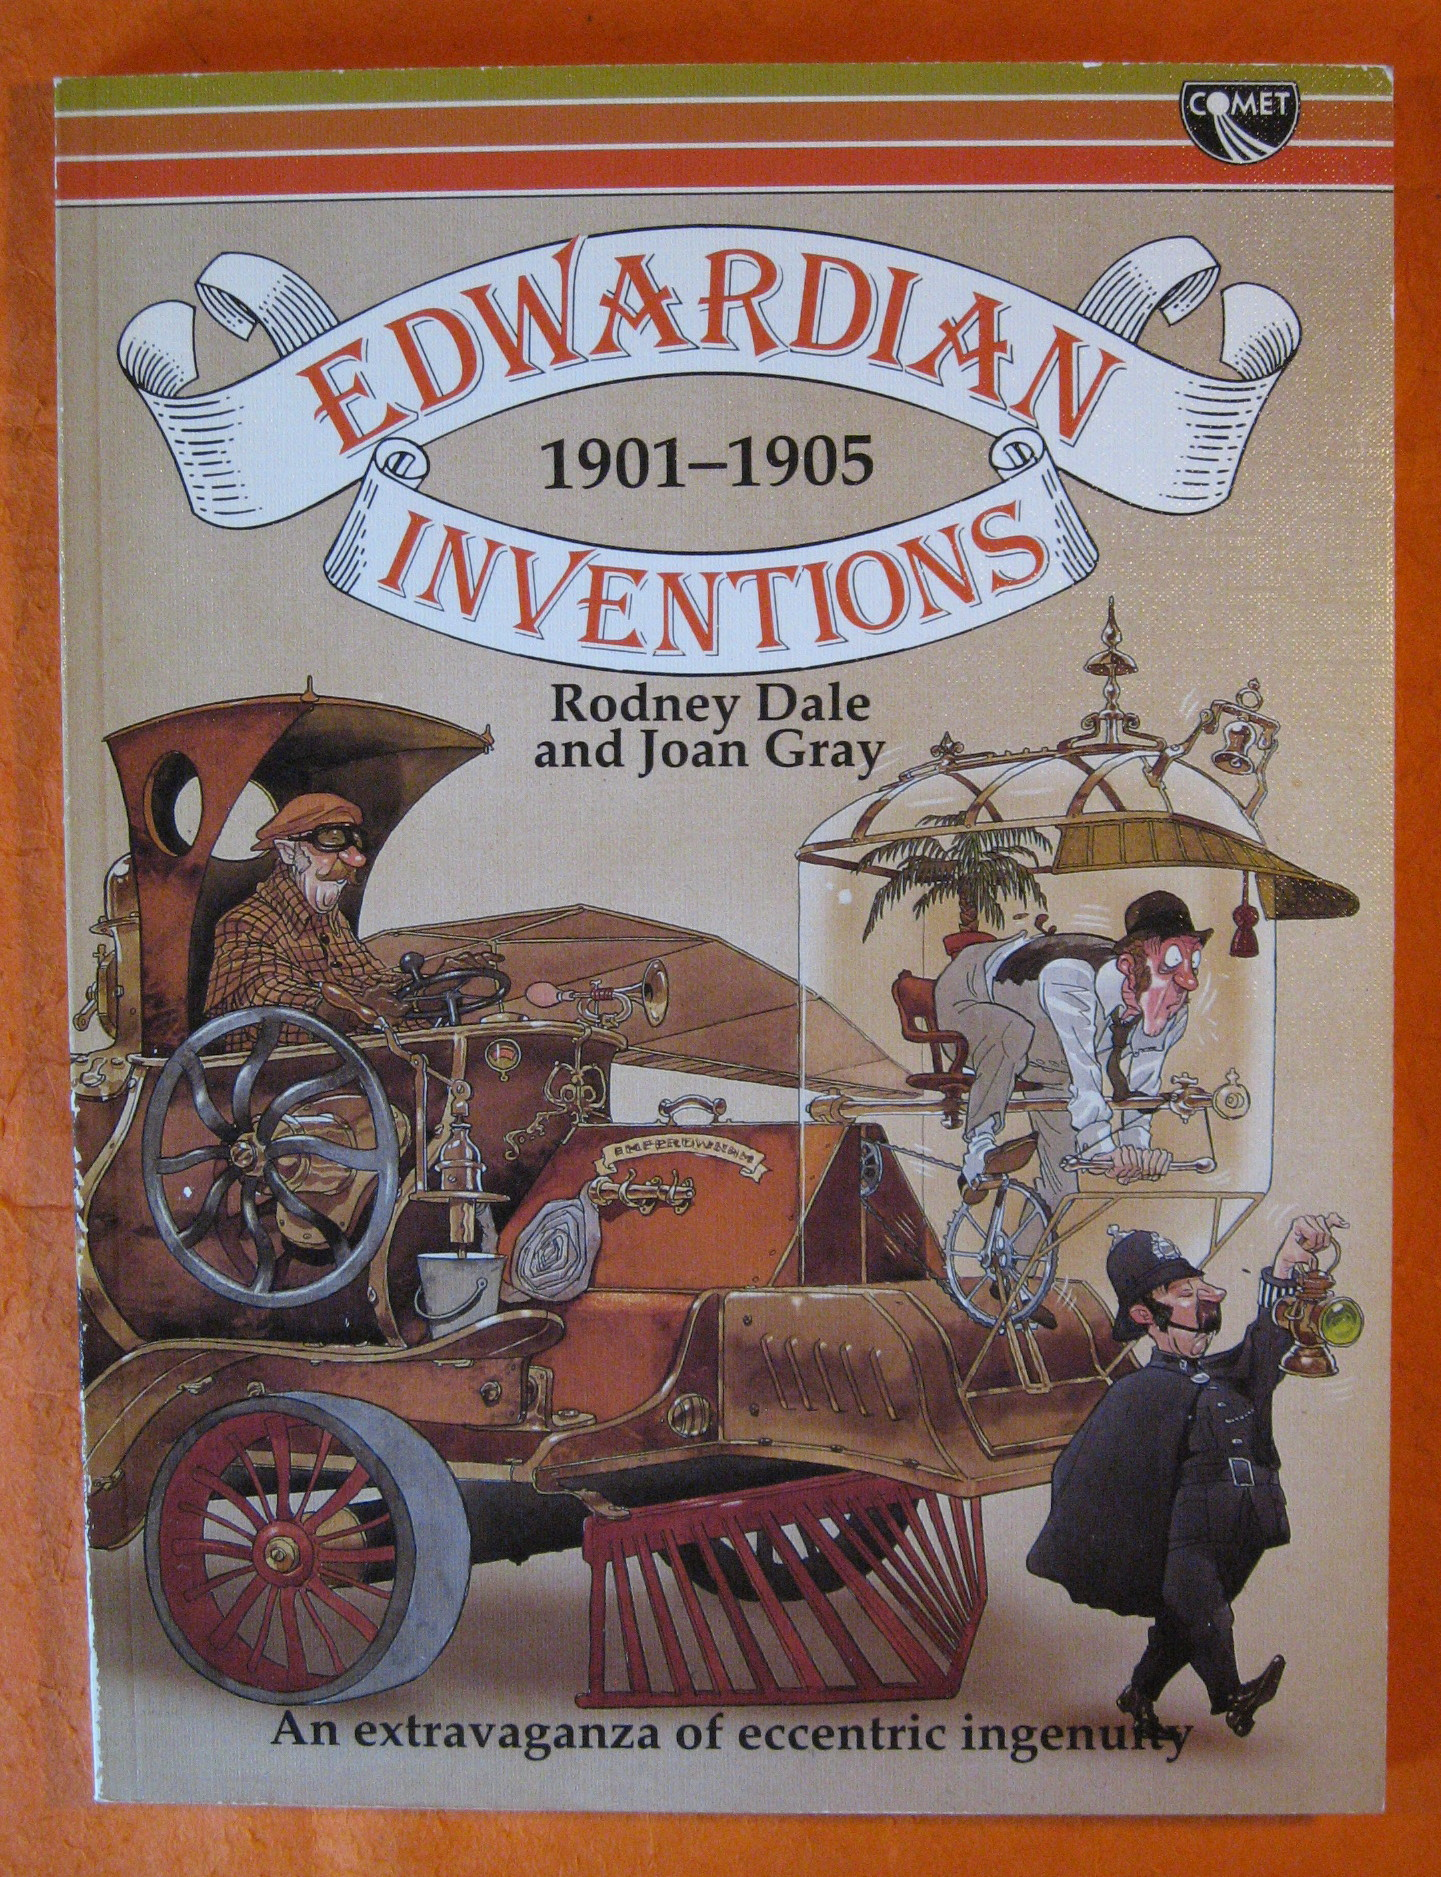 Edwardian Inventions 1901-1905:  An Extravaganza of Eccentric Ingenuity, Dale, Rodney; Gray, Joan